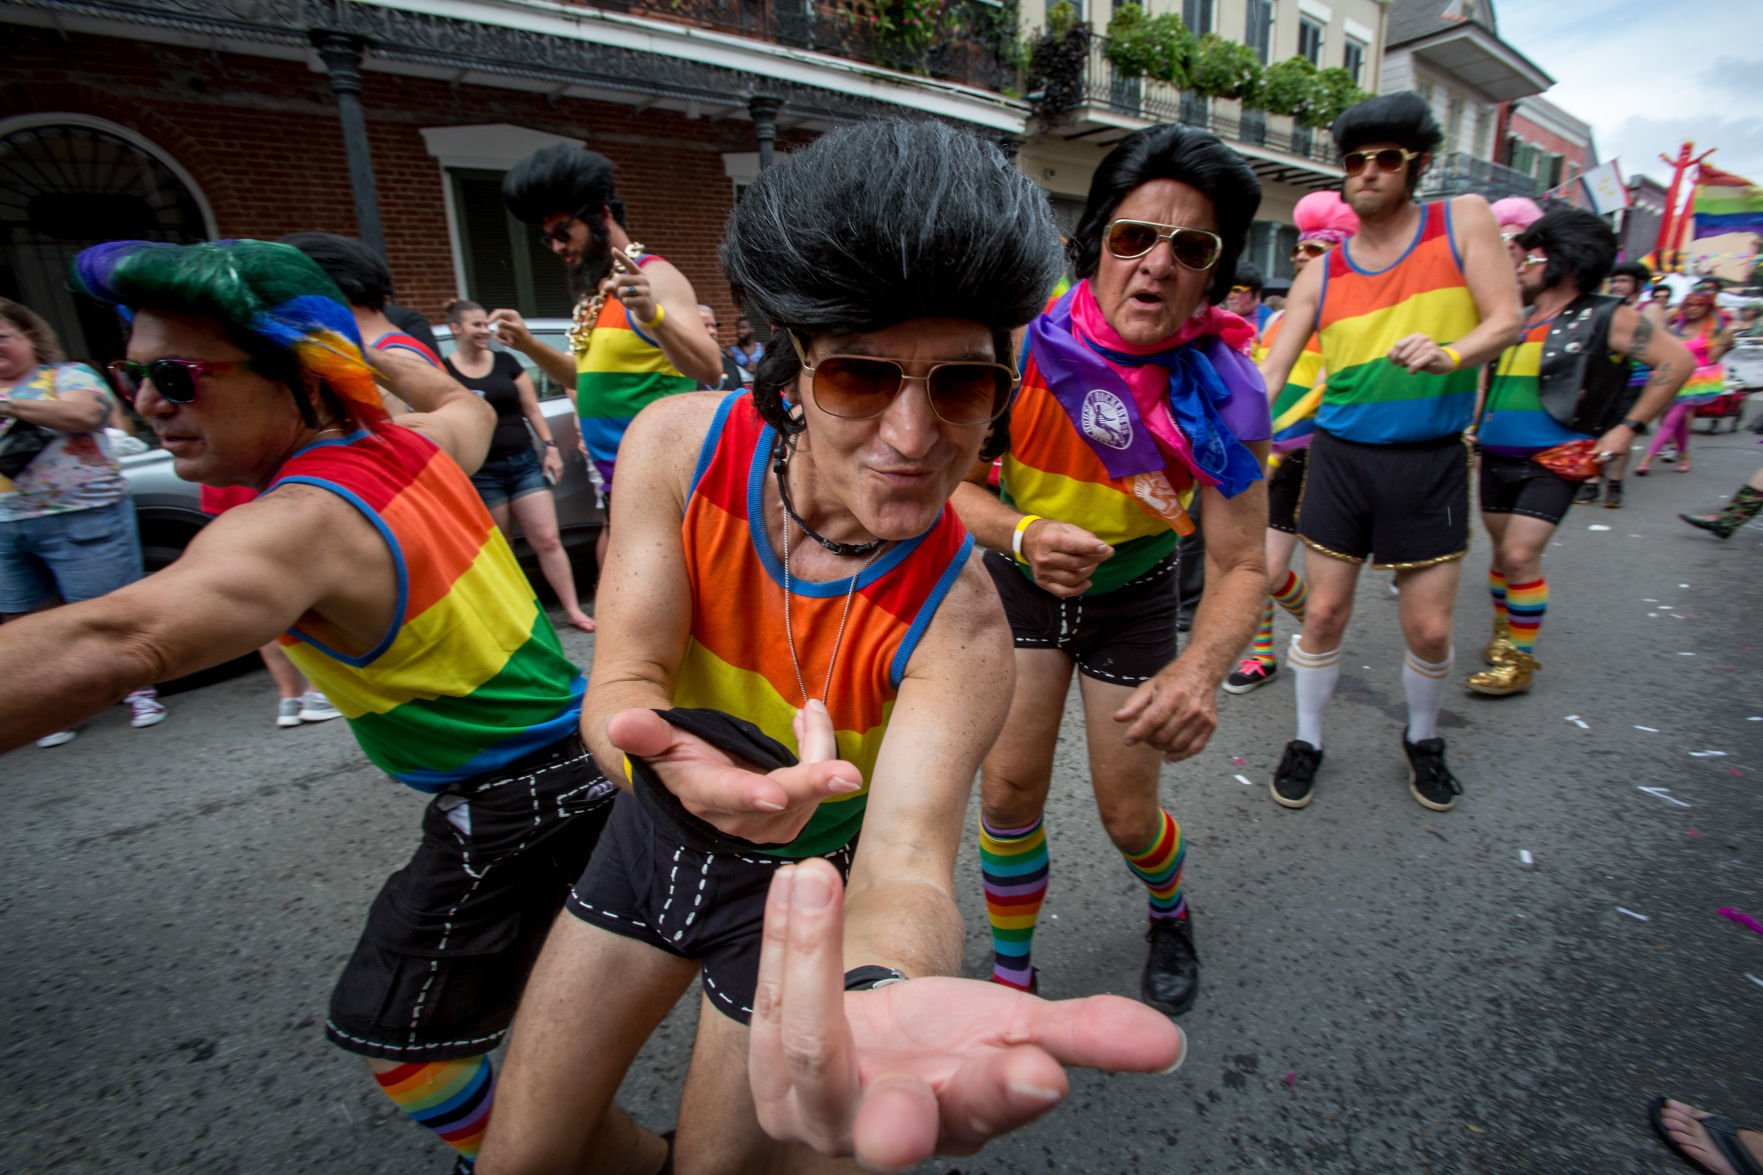 New orleans gay pride dates for 2008